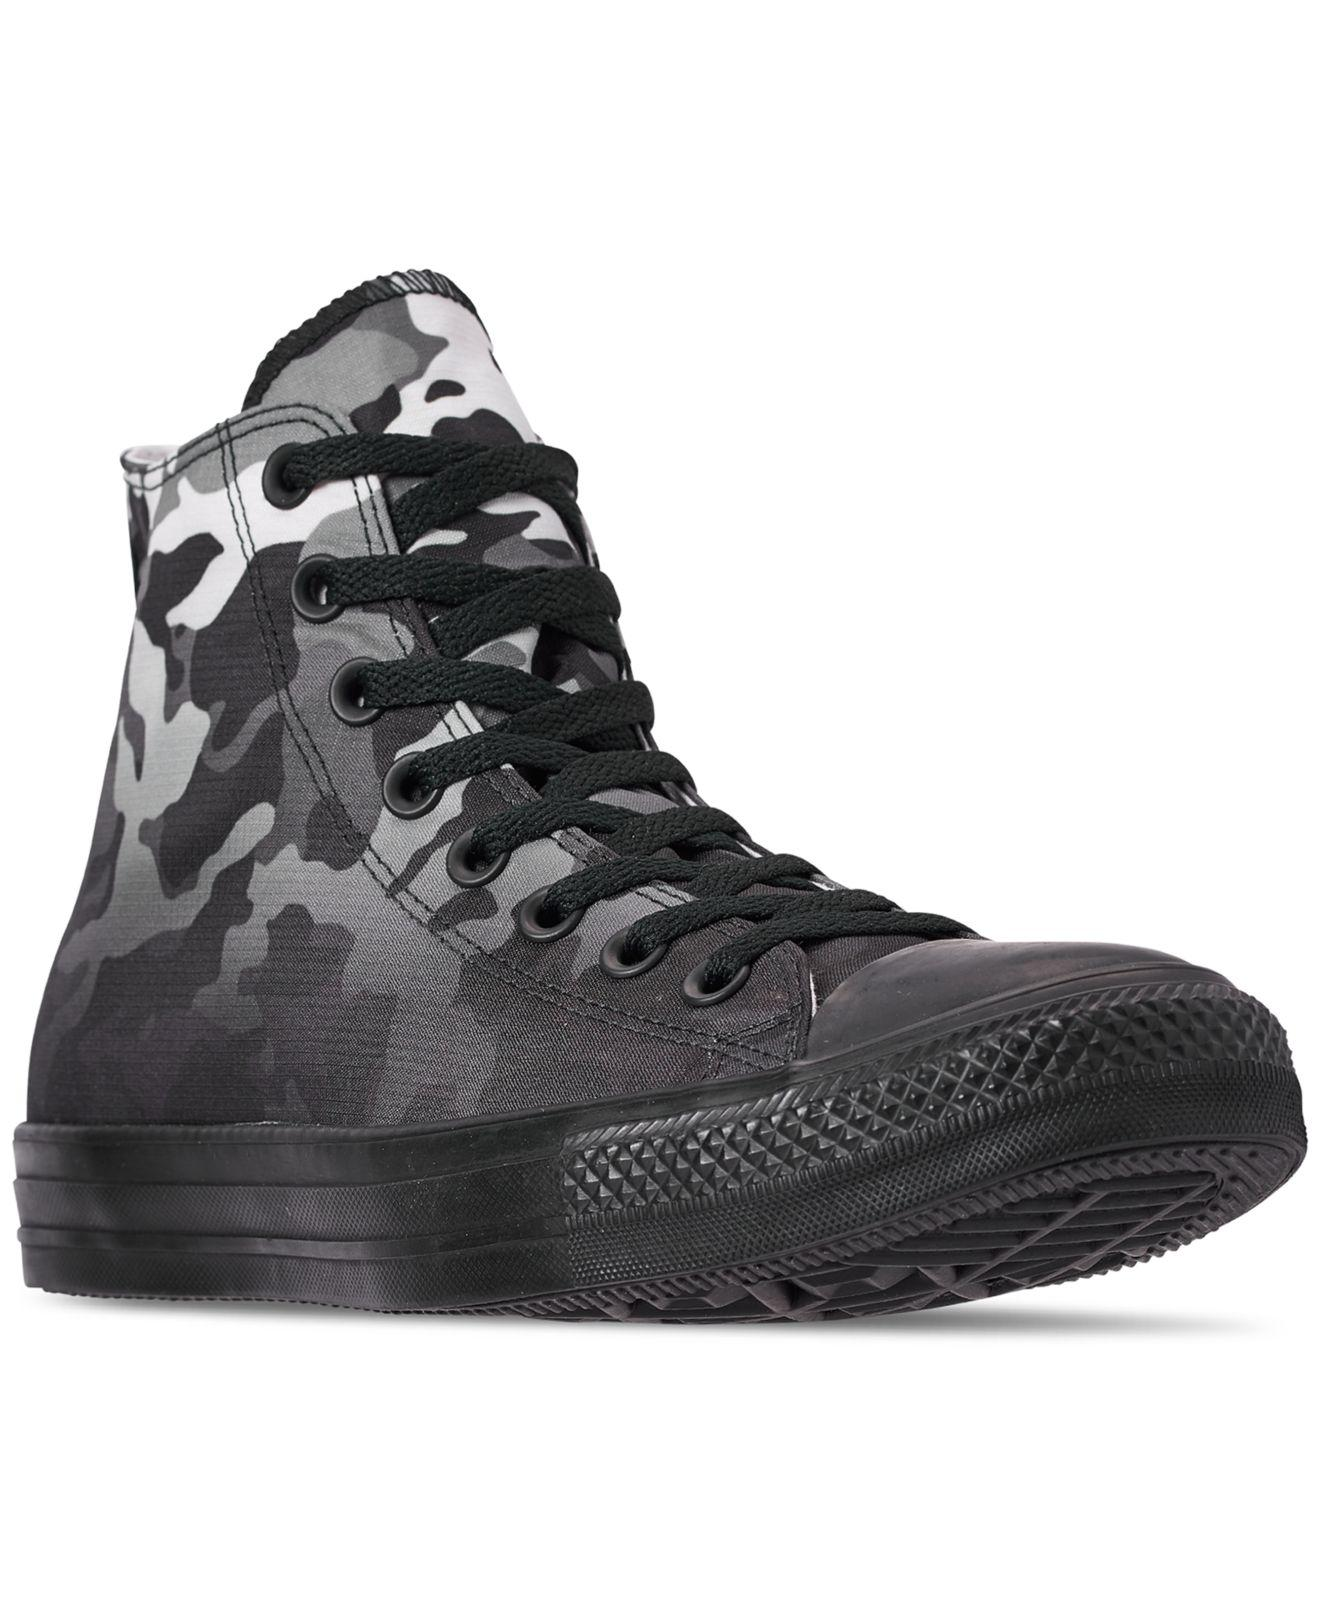 d413cefdbe7 Converse. Men s Black Chuck Taylor All Star Gradient Camo High Top Casual  Sneakers ...